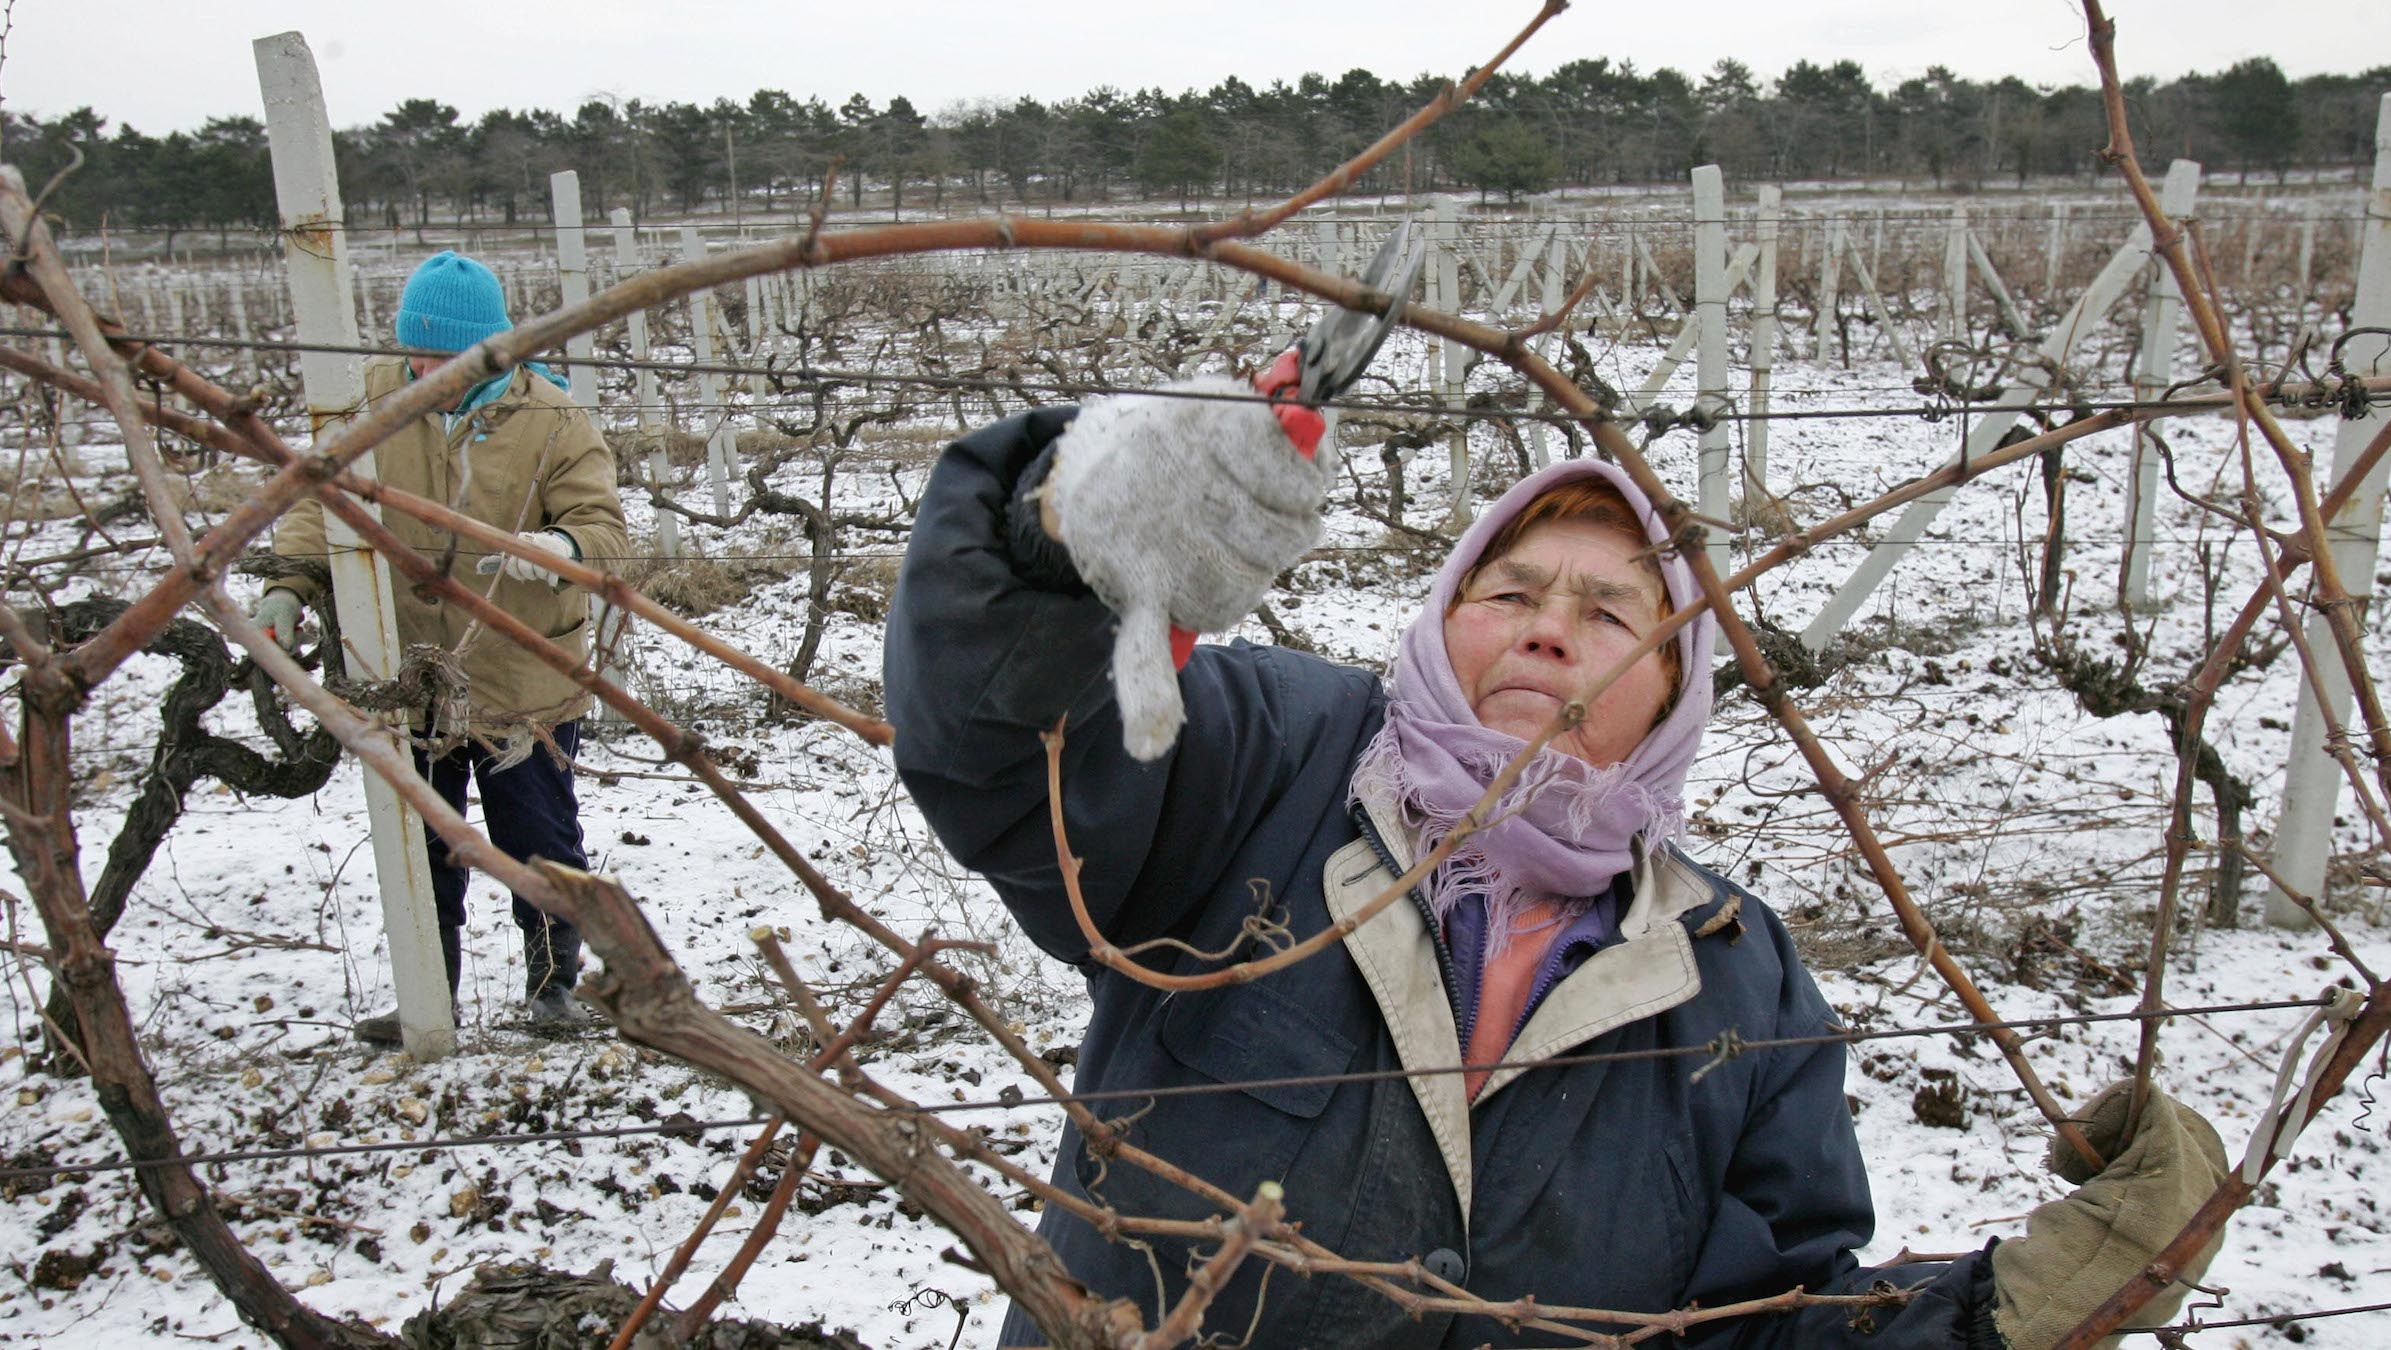 A Ukrainian woman prunes branches from a vineyard hit by frosts, at a farm near Ukraine's Black sea port of Sevastopol on February, 15, 2006. Temperatures fell to a 20-year low in Ukraine's southern Crimea, killing from 70 to 100 percent of grape harvest on the wine-making peninsular. REUTERS/Gleb Garanich - RTR1AZTT